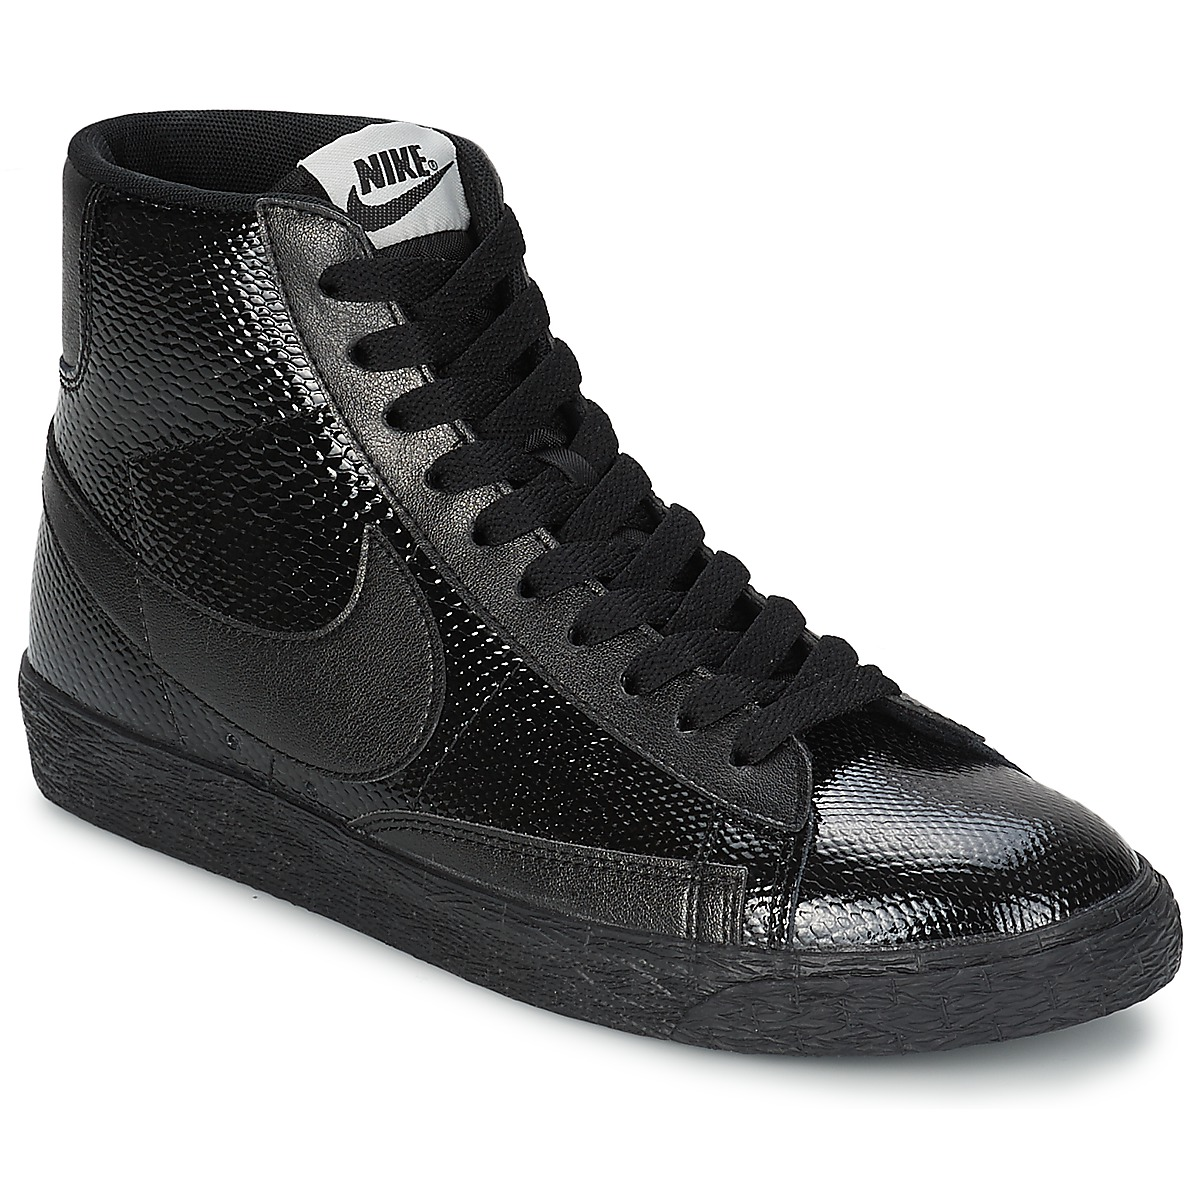 nike blazer en cuir noir femme. Black Bedroom Furniture Sets. Home Design Ideas